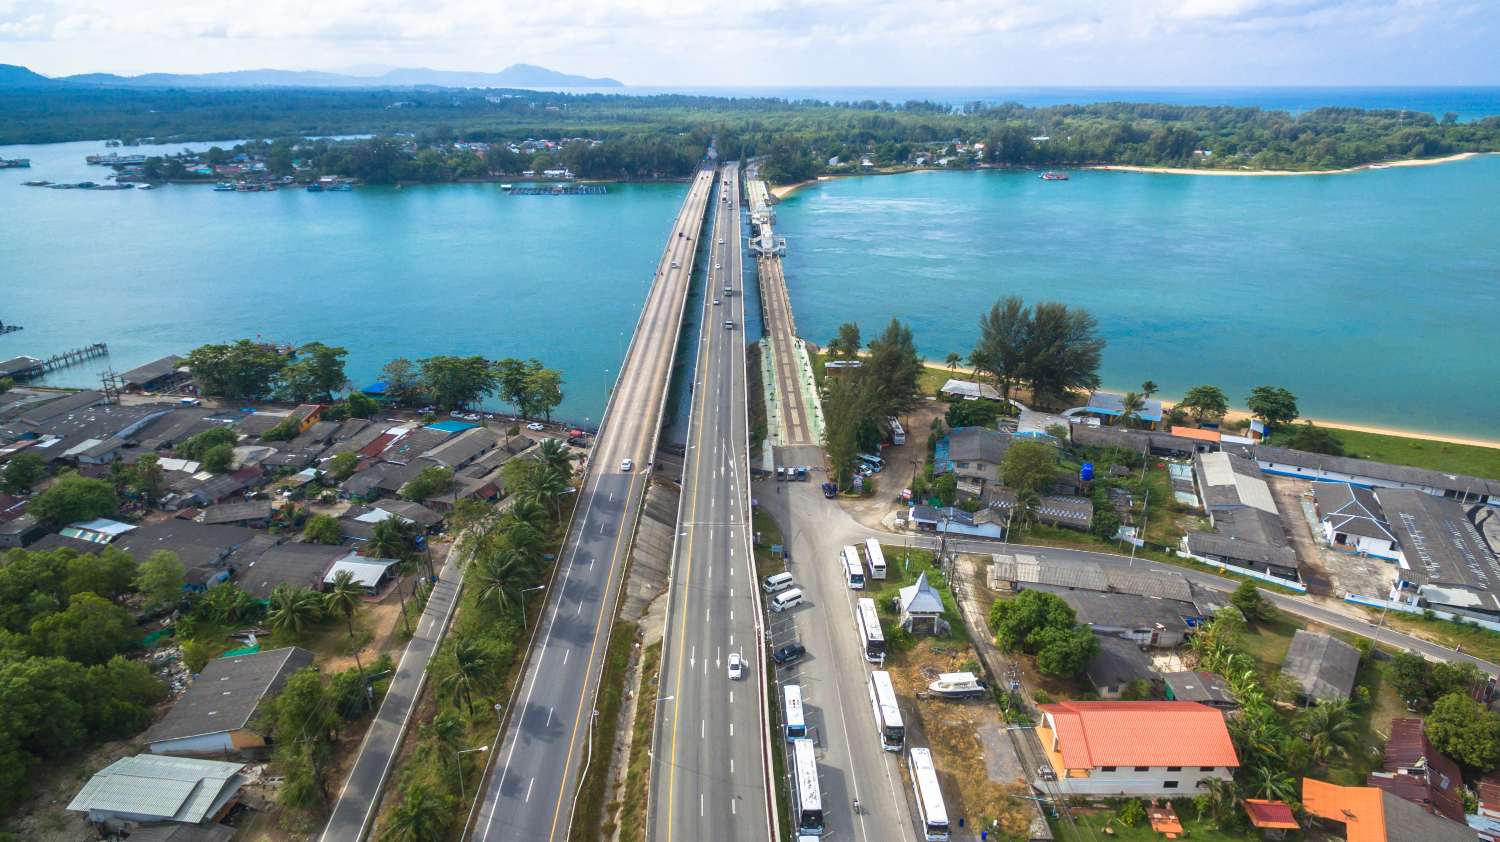 The Sarasin Bridge with the island of Phuket on the other side